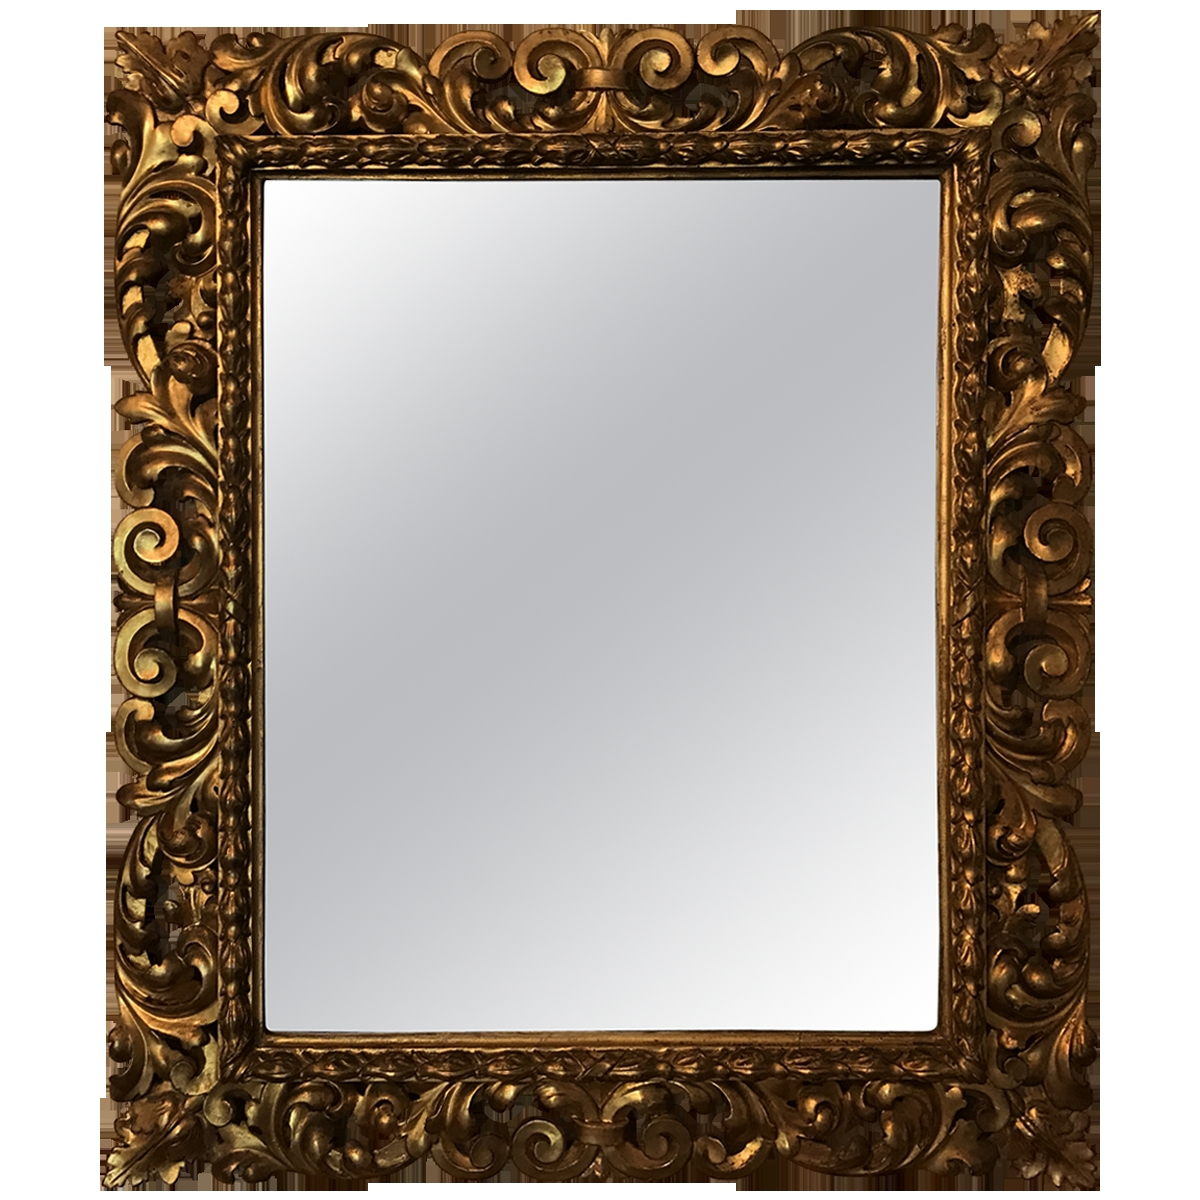 Viyet Designer Furniture Accessories Vintage Ornate Gilt Mirror In Ornate Gilt Mirrors (Image 15 of 15)